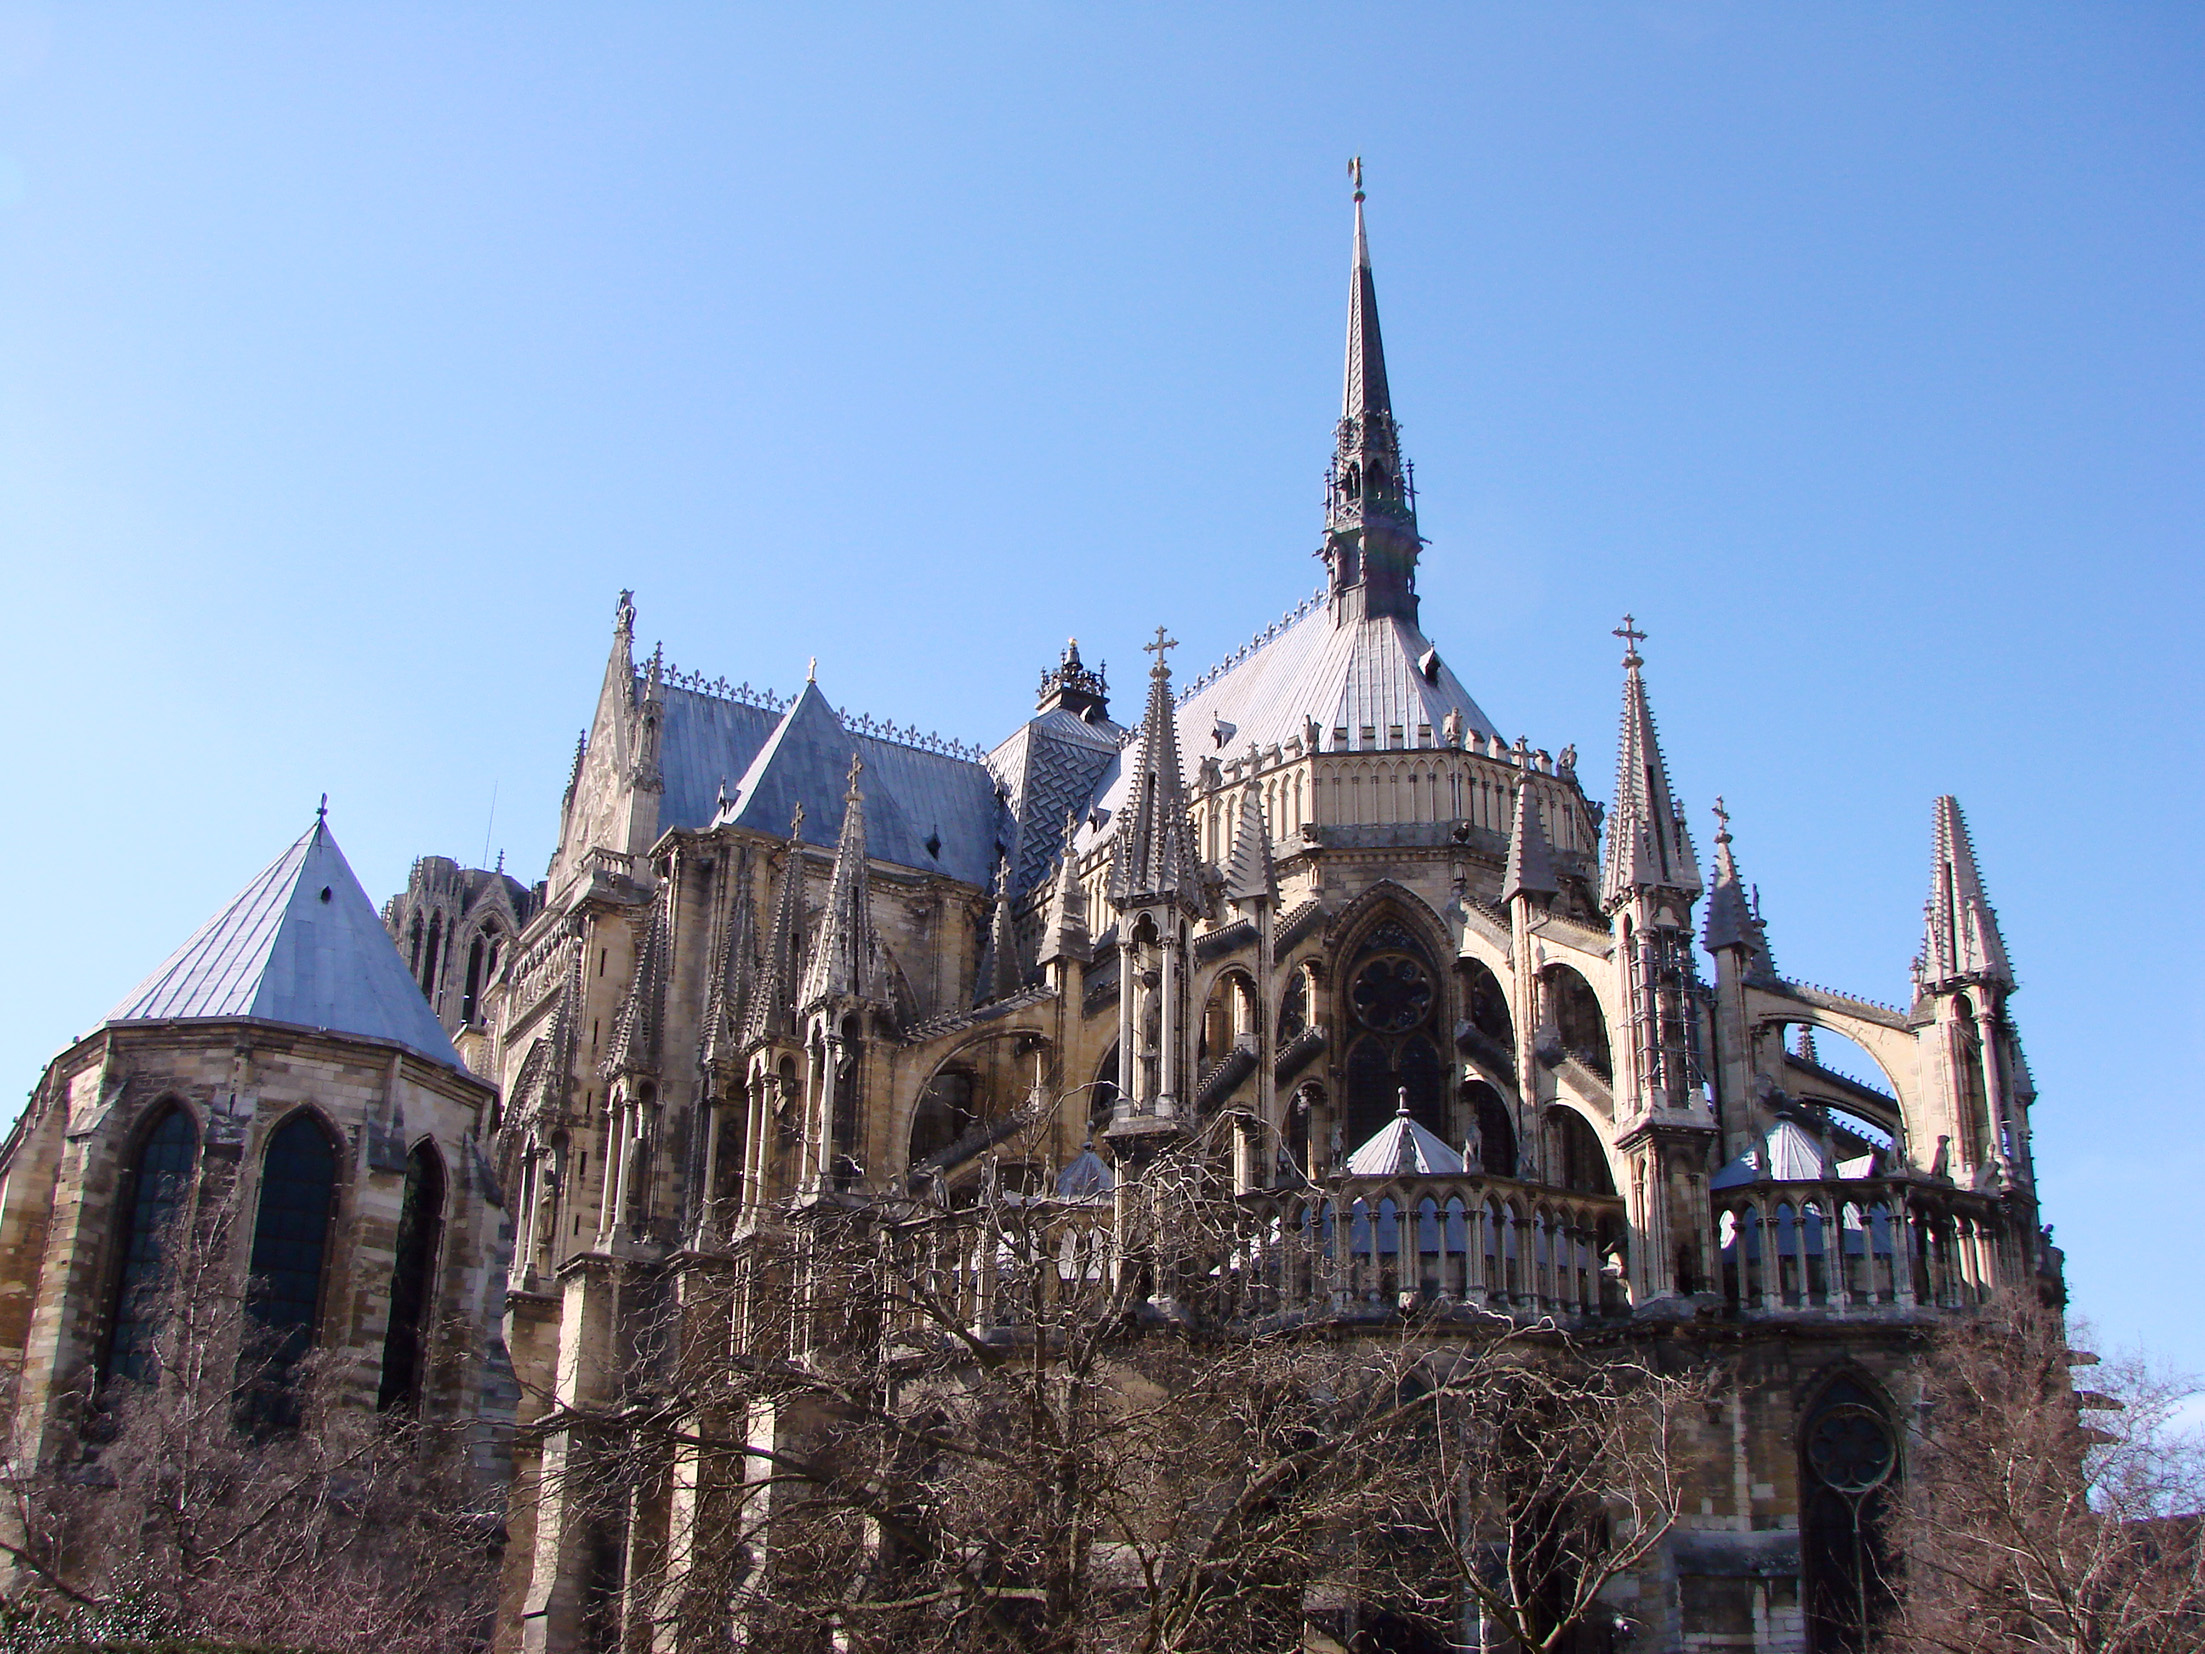 http://upload.wikimedia.org/wikipedia/commons/0/00/Chevet_cath%C3%A9drale_Reims.jpg